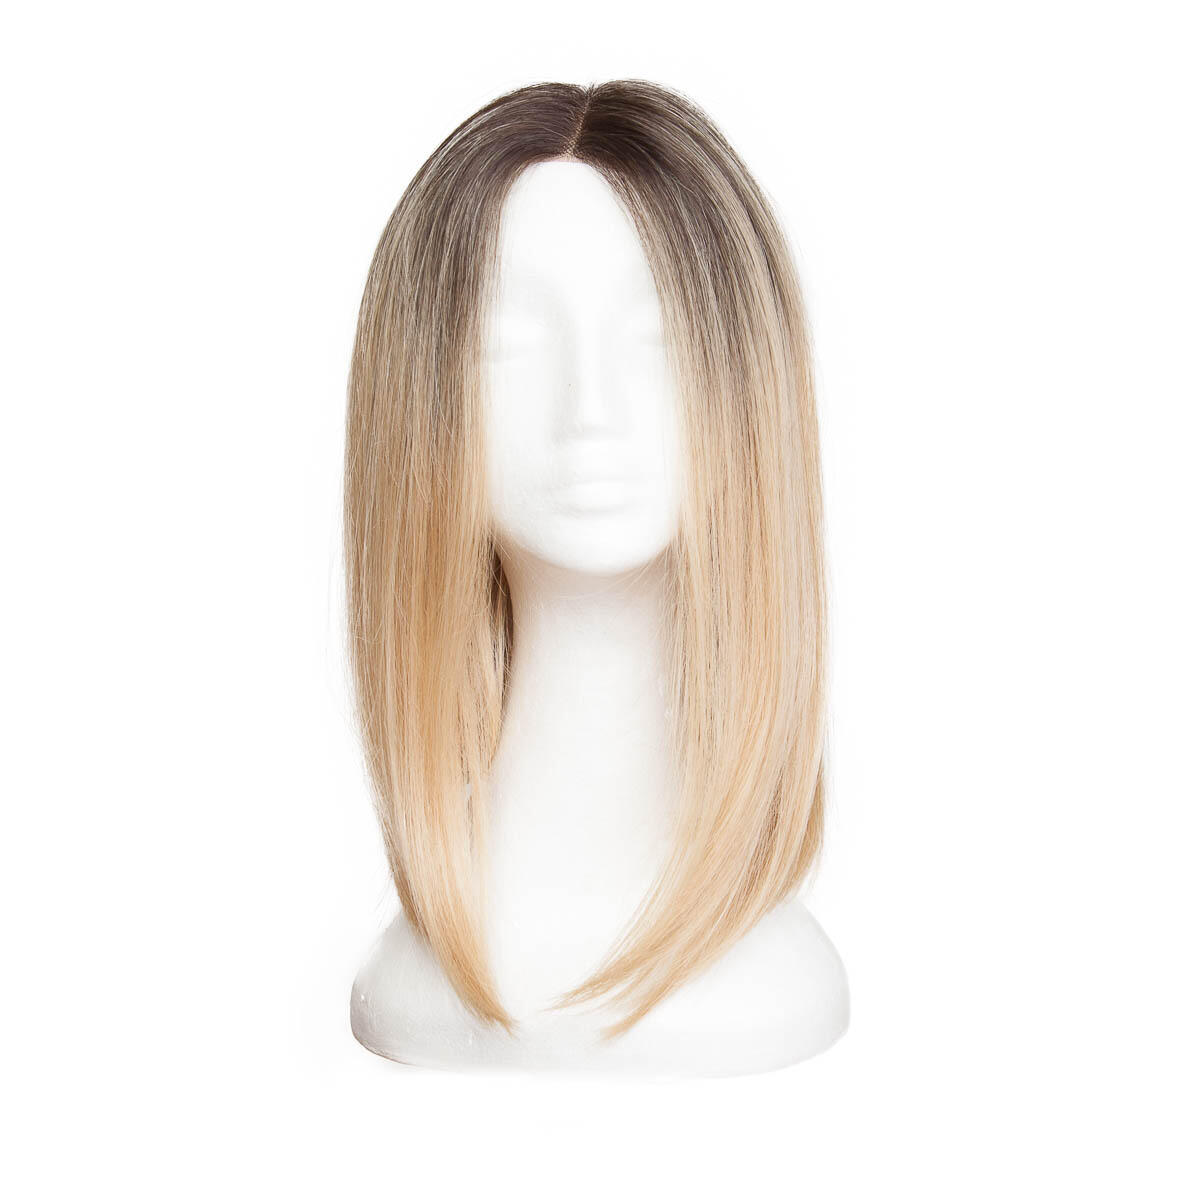 Lace Front Wig O2.3/9.0 Chocolate Brown/Scandinavian Blond 40 cm